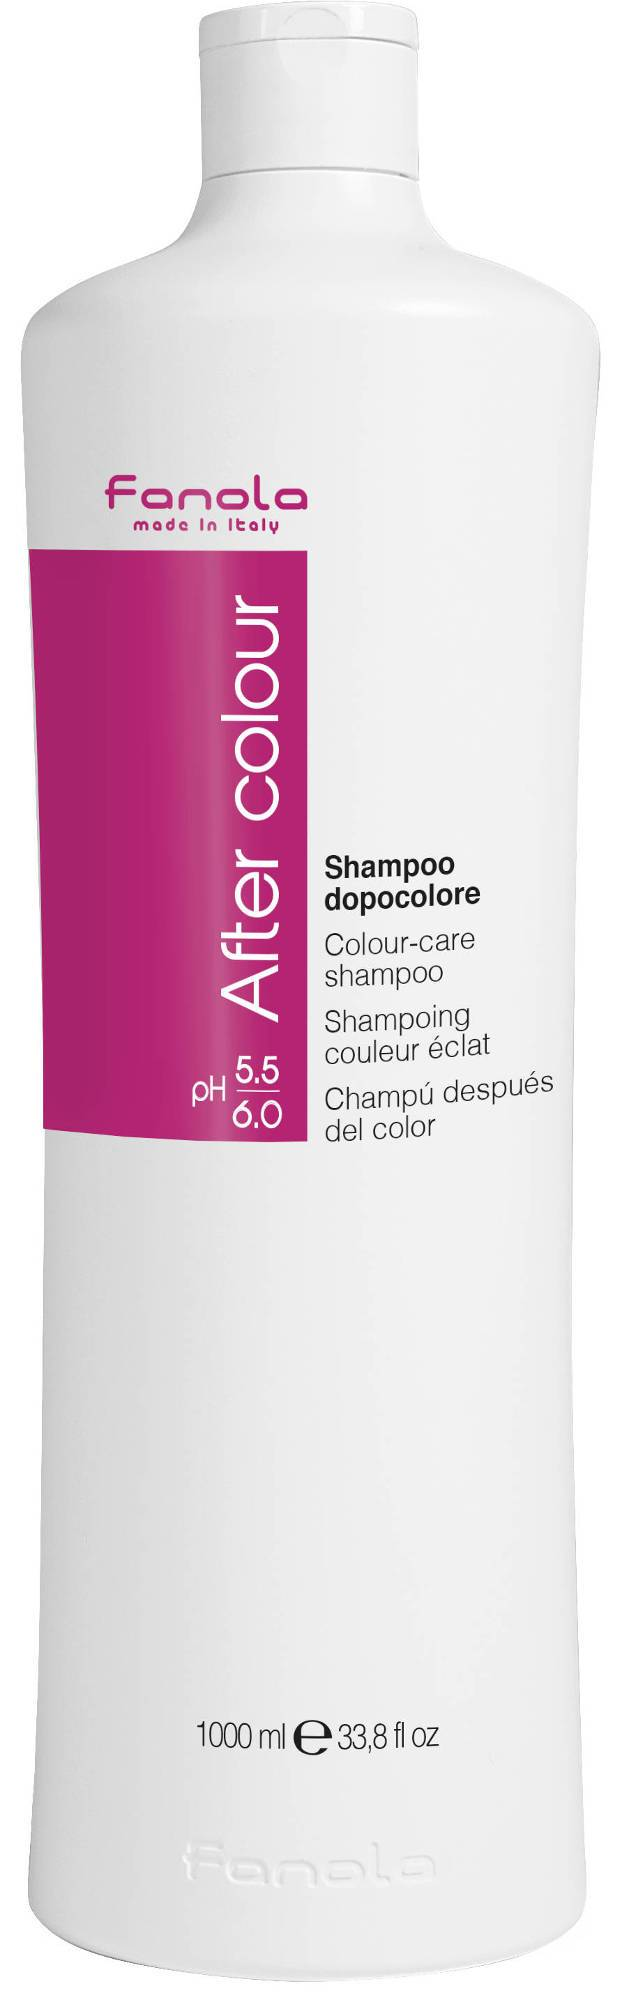 Fanola After Colour Care Shampoo Hair Shampoos Fanola 1000 mL